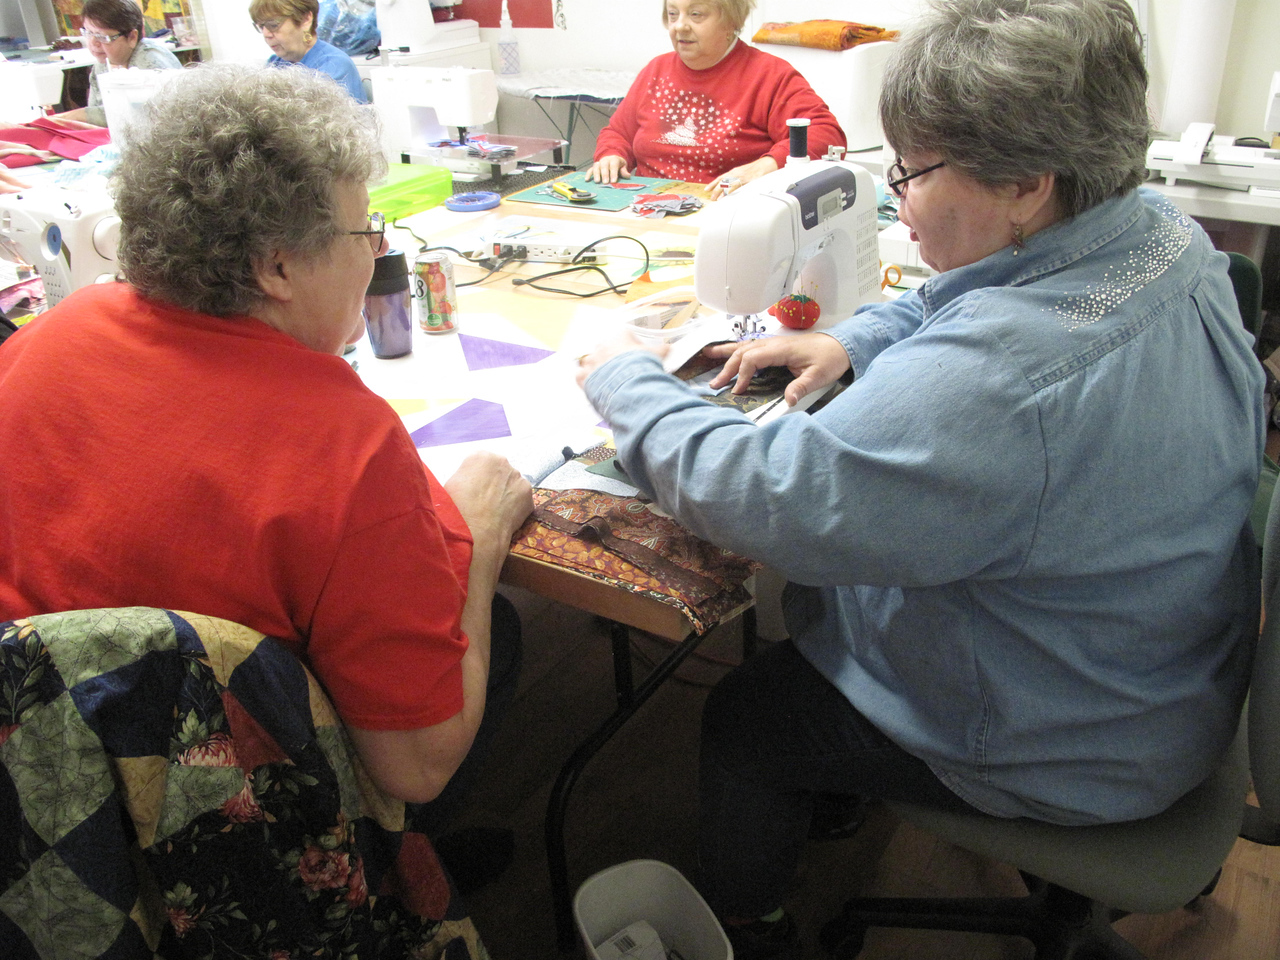 ELIZABETH DOBBINS / THE GAZETTE Jan Codney and Ruth Sopata chat while they work on projects at the Little Red Quilt House.